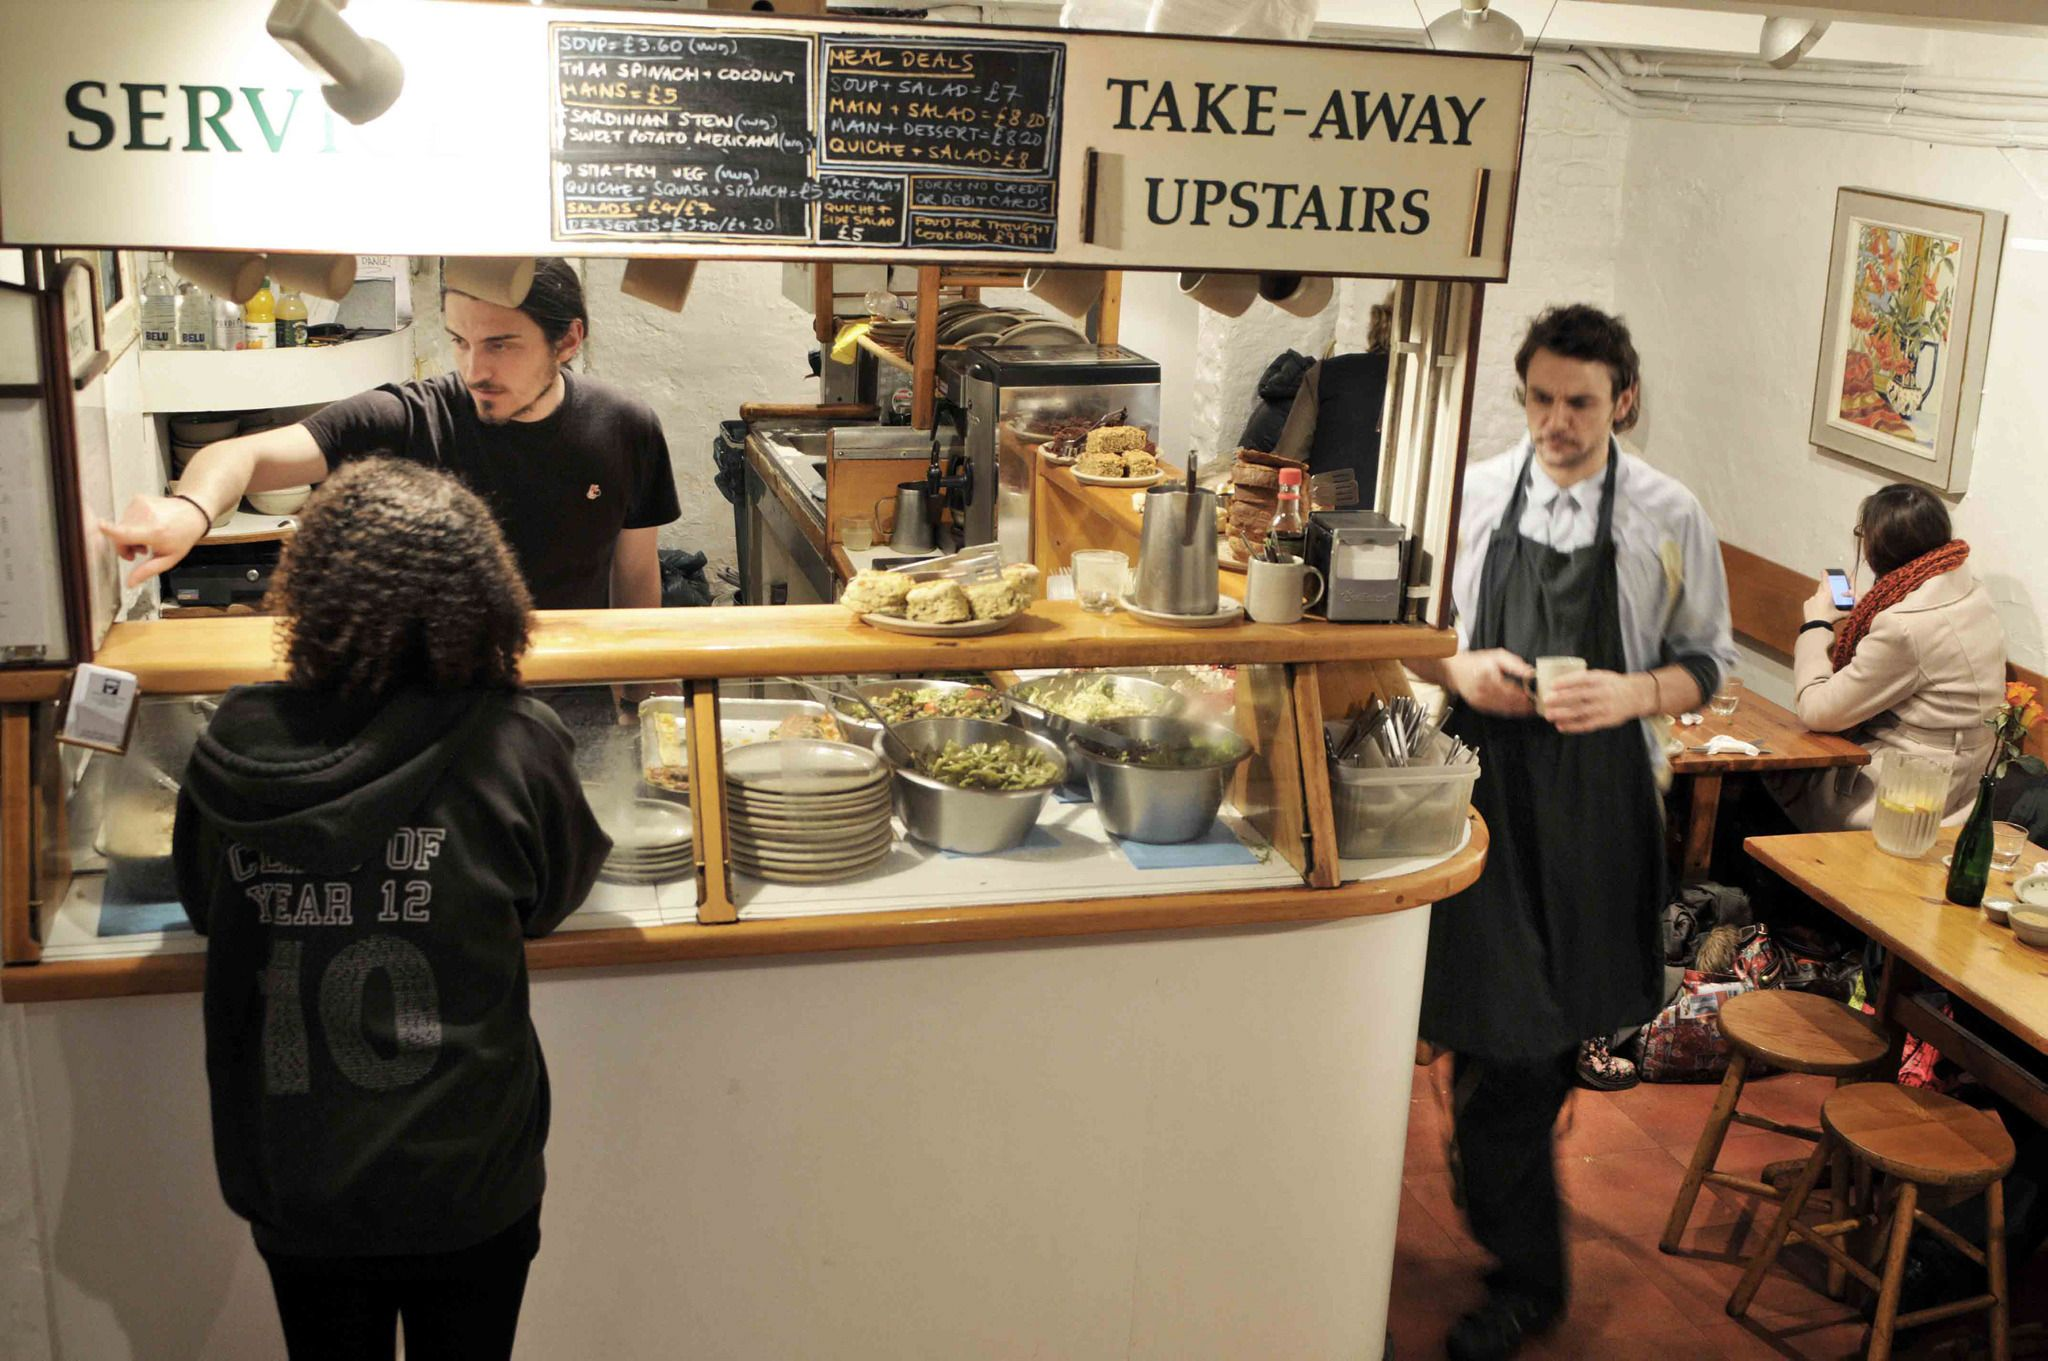 Guaranteed Cheap Hearty Vegetarian Food In A Convivial Setting Http Www Timeout Com London Resta Food For Thought Things To Do In London Cheap Eats London